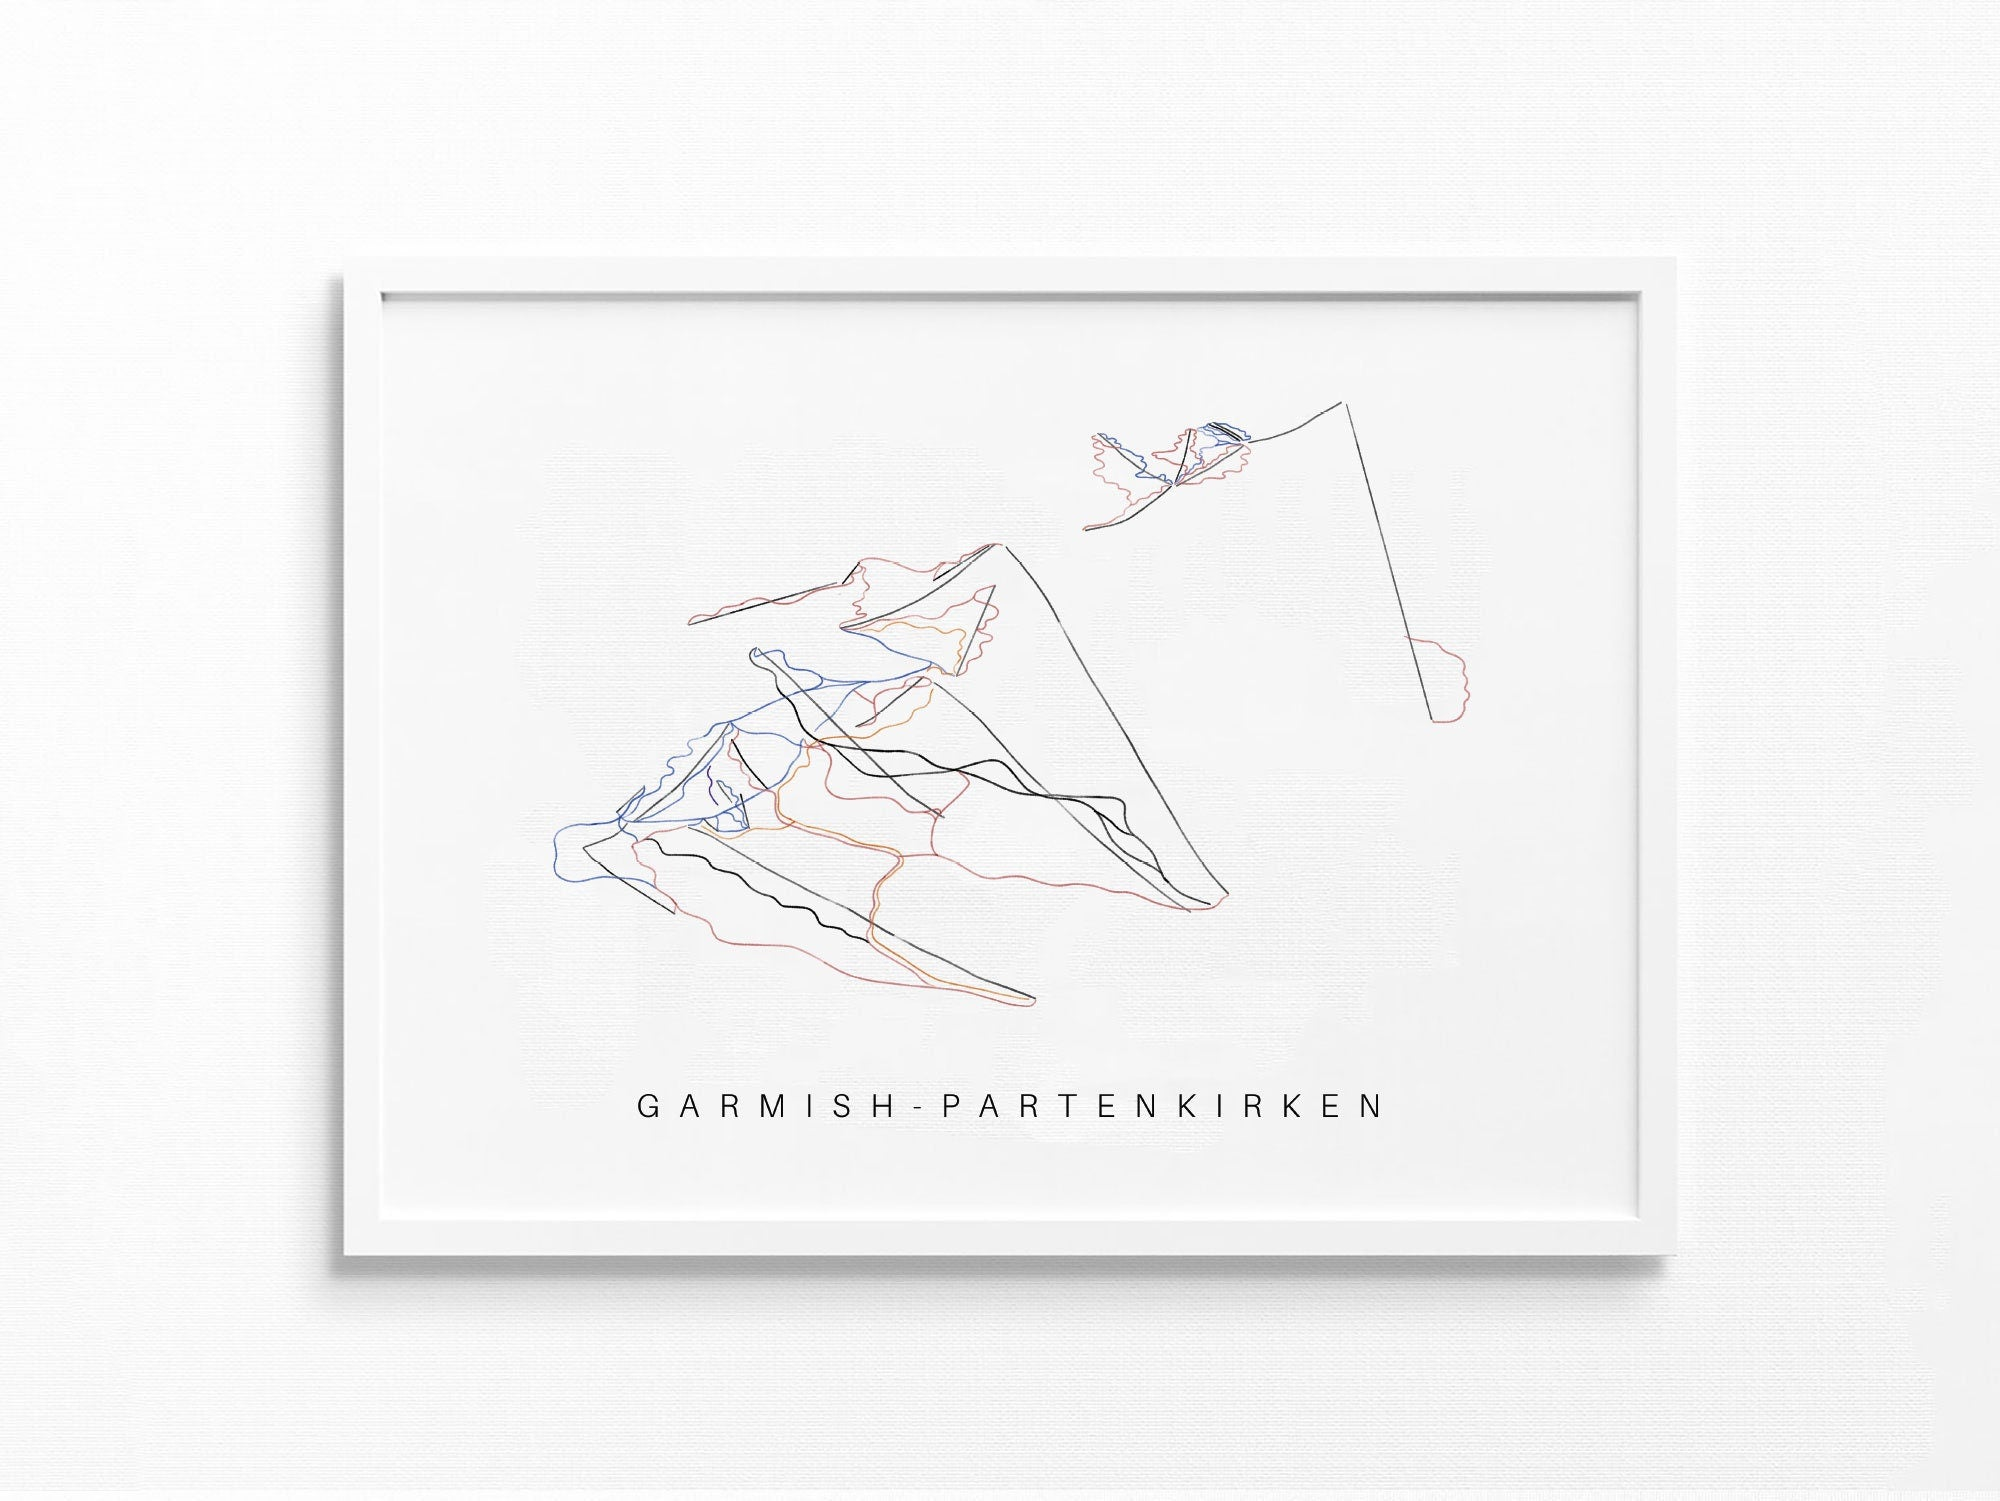 Garmisch-Partenkirchen | Germany | Trail Map, Ski Decor Gift, Ski Slopes, Mountain Layout | Minimalist Print UNFRAMED